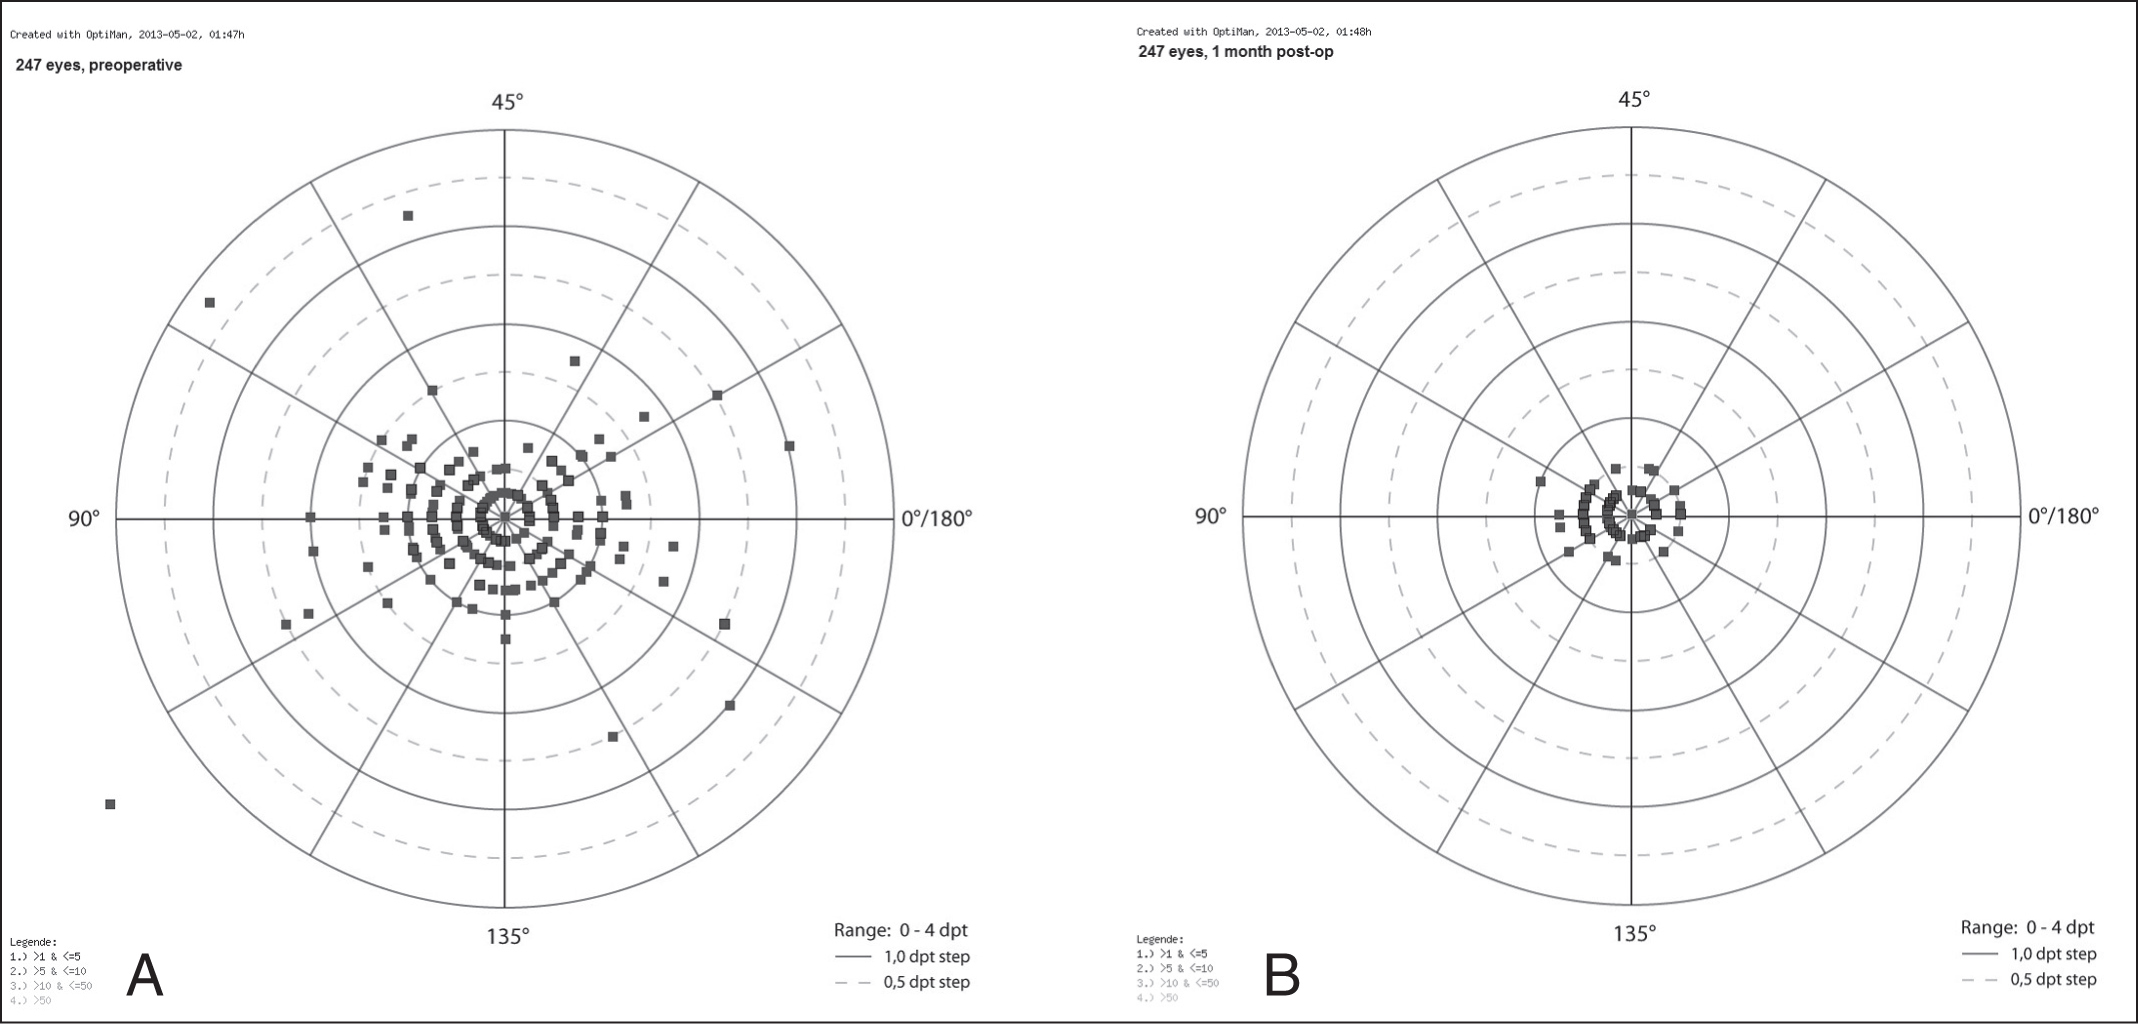 Early Clinical Outcomes Of Wavefront Guided Myopic Lasik